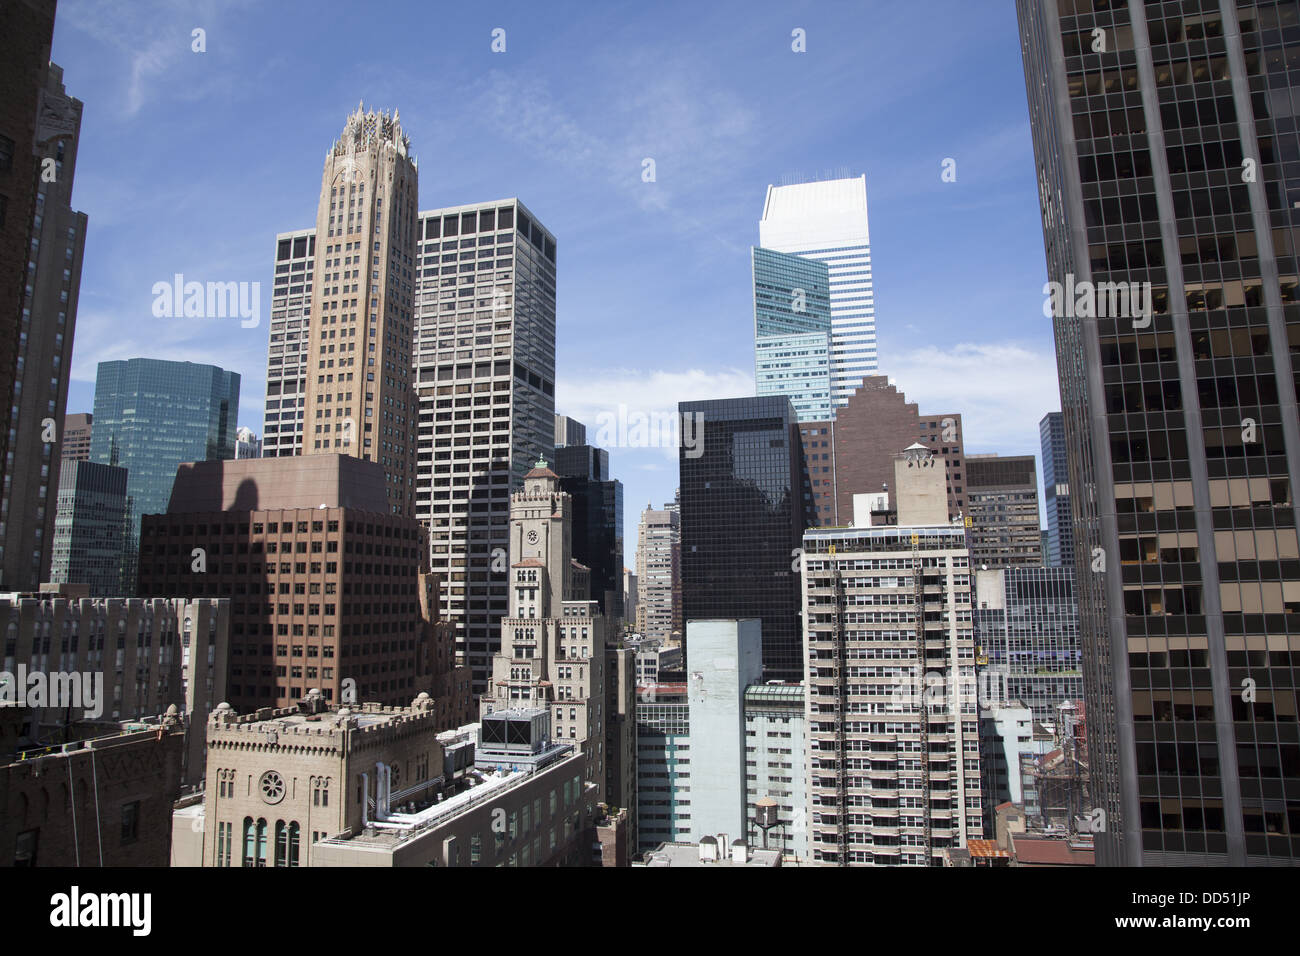 Looking North From An Apartment On East 48th St. In Midtown Manhattan, NYC.